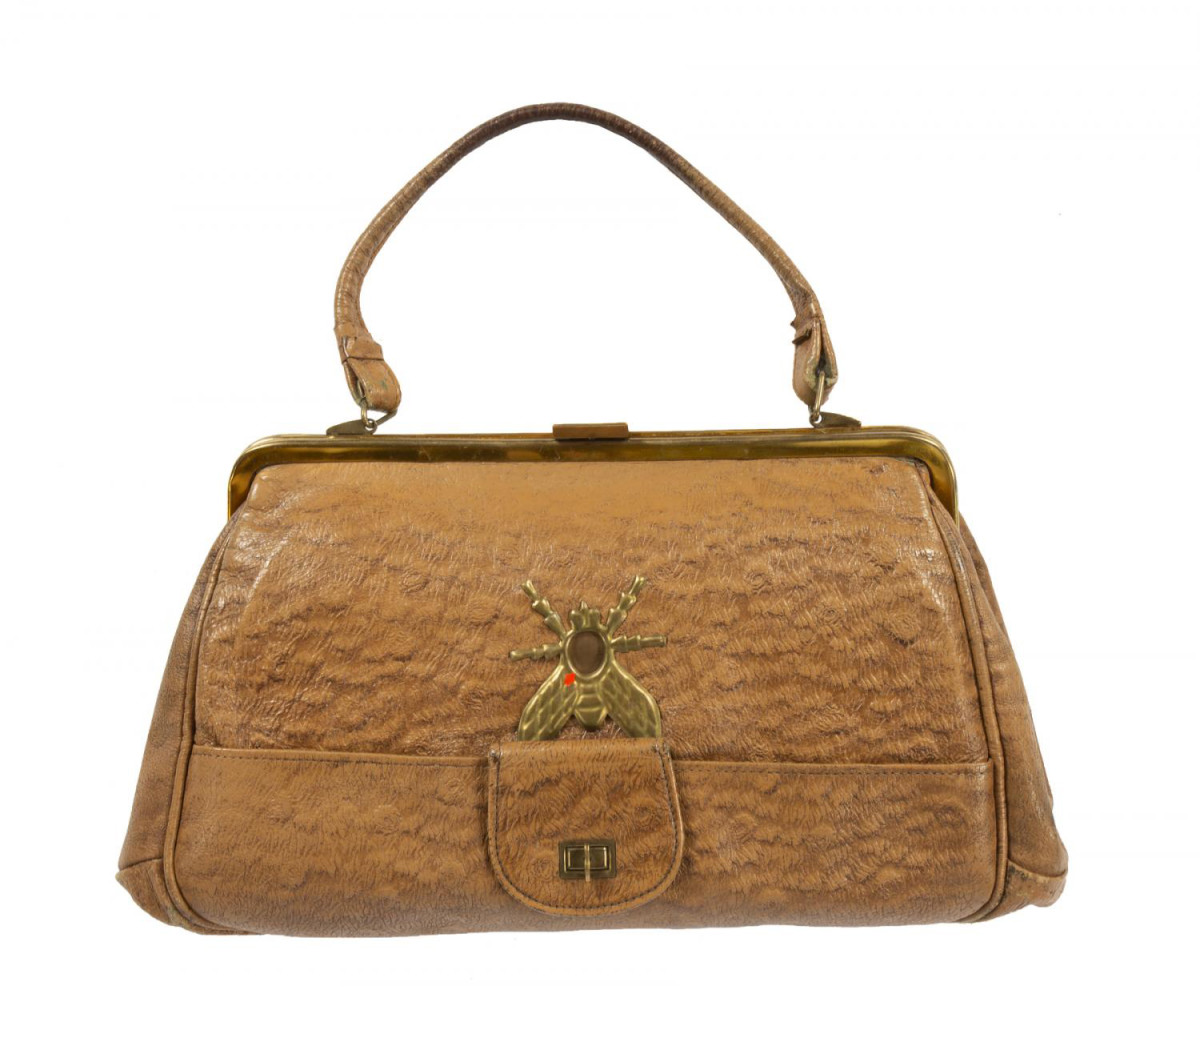 "A Soviet KGB spy purse from the 1950s used by female operatives and designed to hold a concealed FED model camera. The fly emblem on the front of the purse opens up to allow the camera to capture an image. The purse, which is lined with Vataline material to conceal sound, has come to be known as ""The Fly."" It was the top lot at Julien's and sold for $32,000."